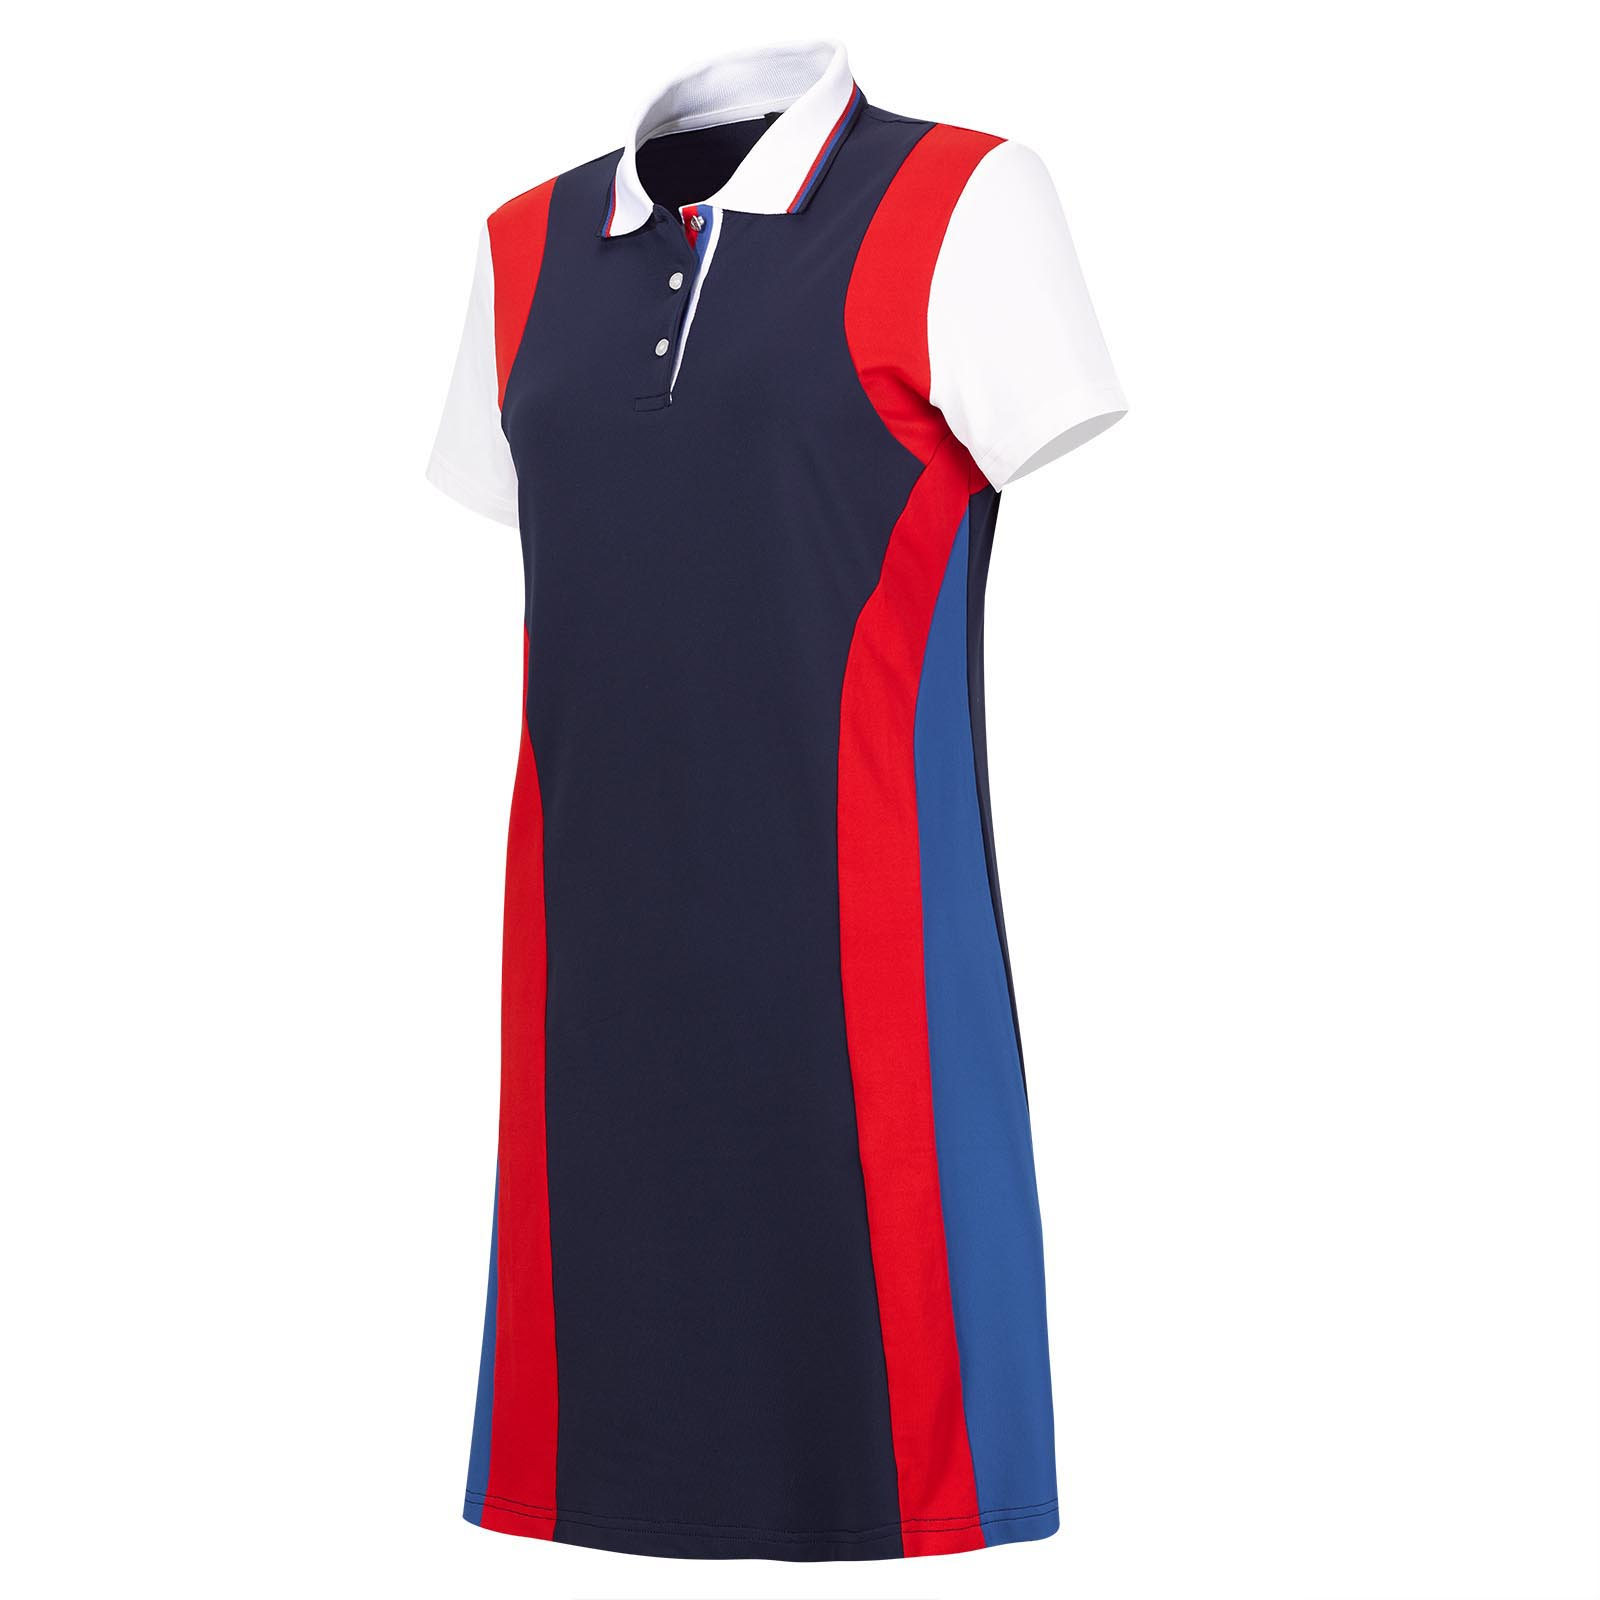 Kurzarm Damen Funktions-Golfkleid im Retro Look mit Sun Protection